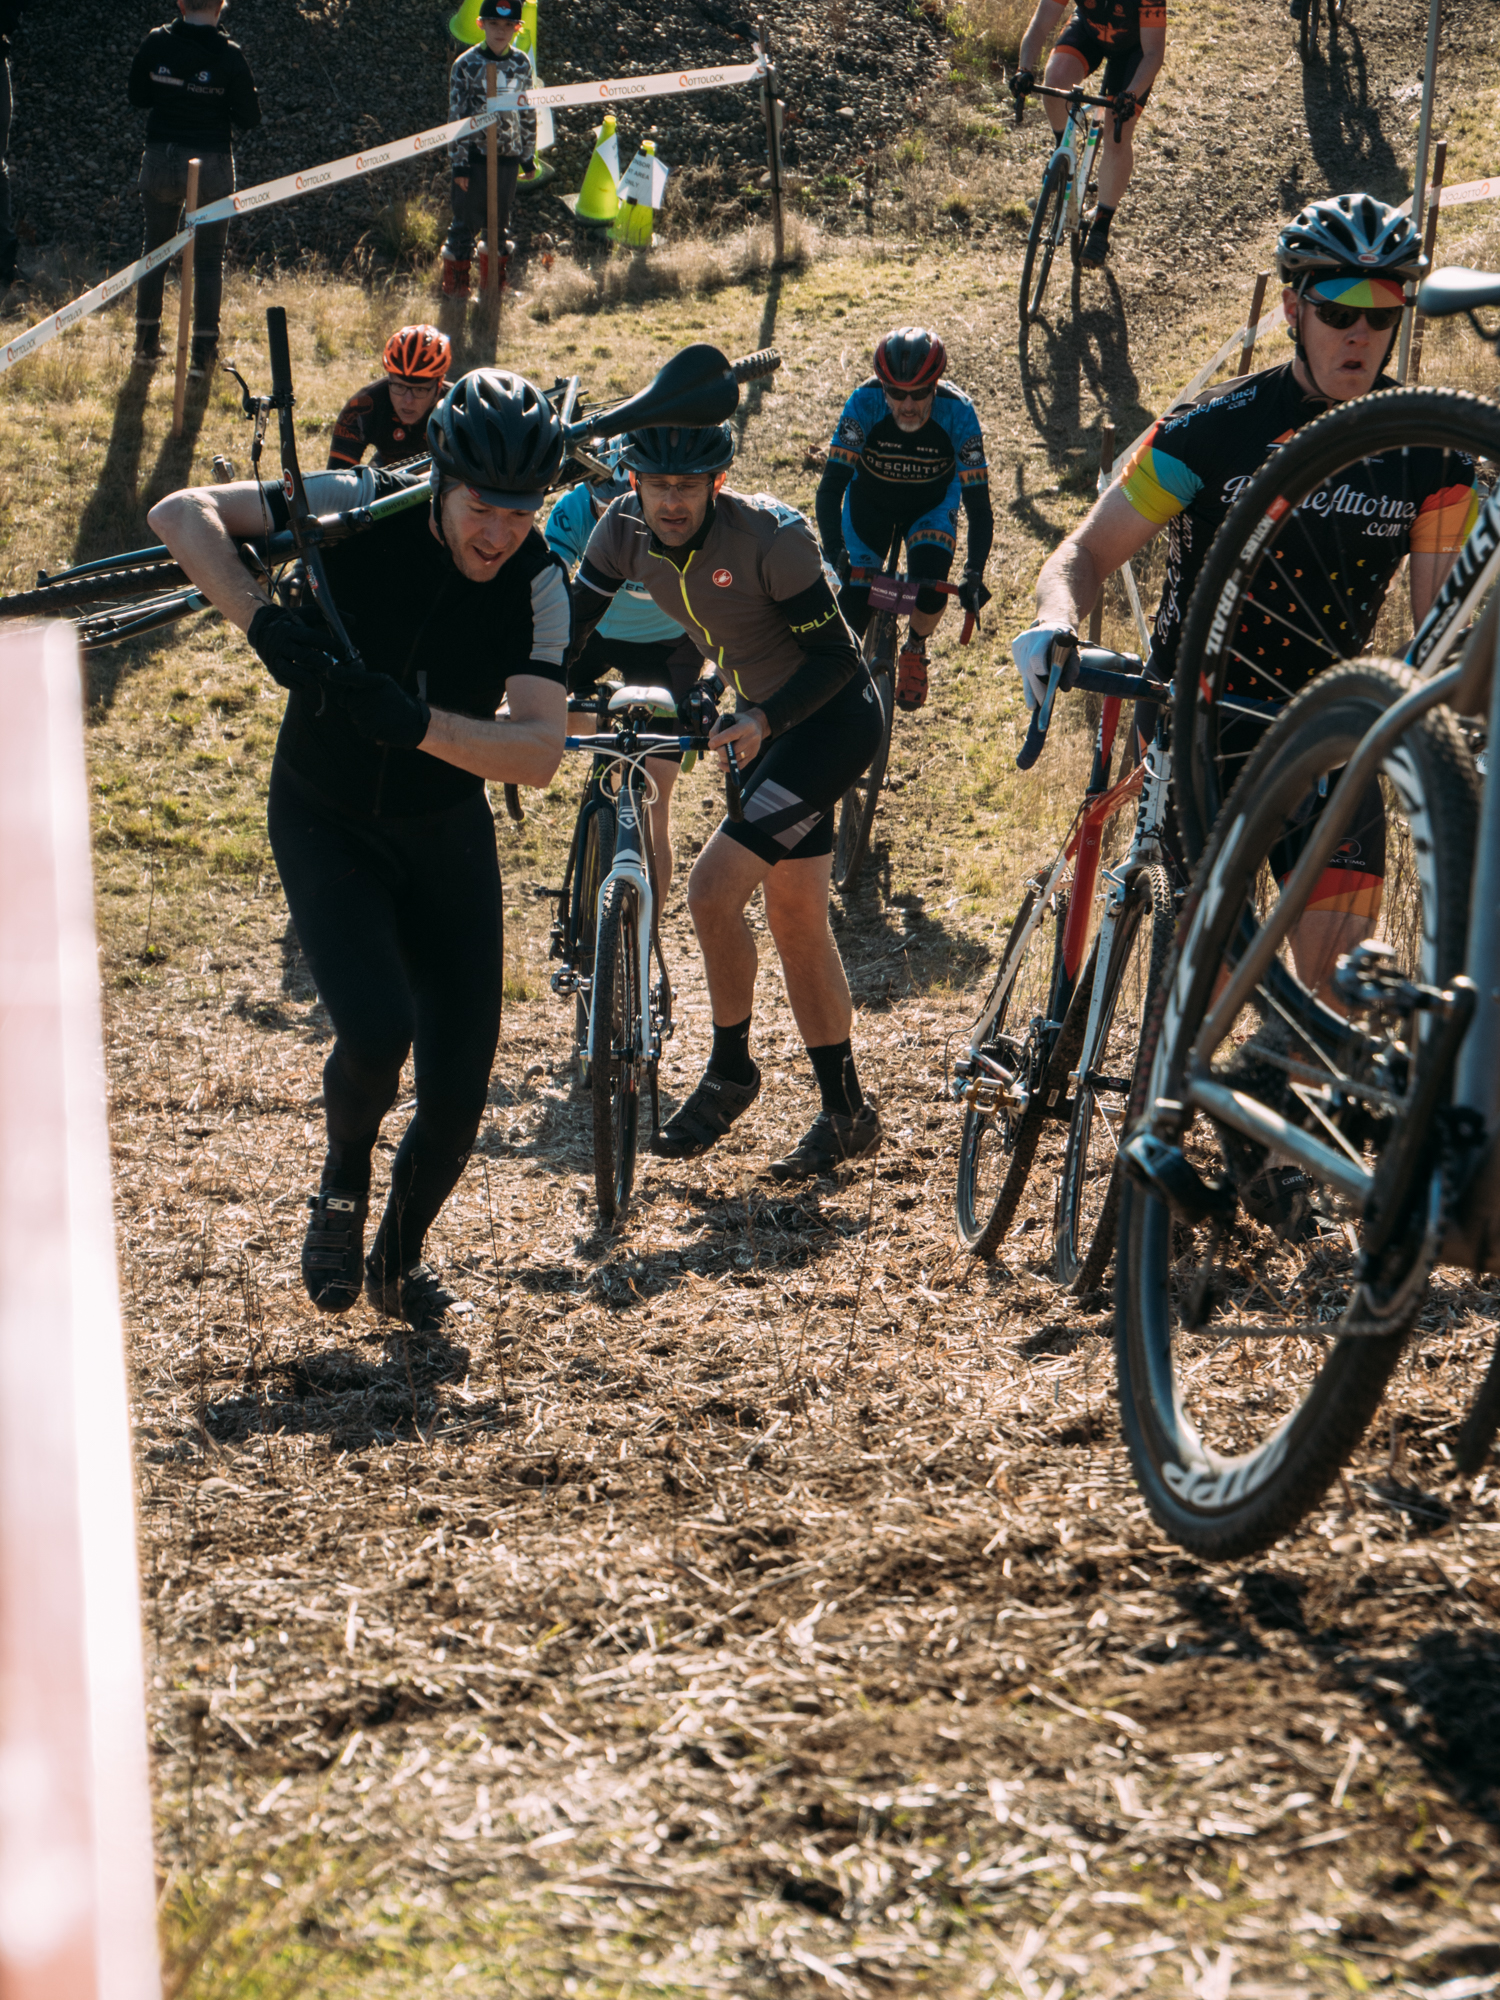 Cyclocross18_CCCX_BartonPark-mettlecycling7.jpg